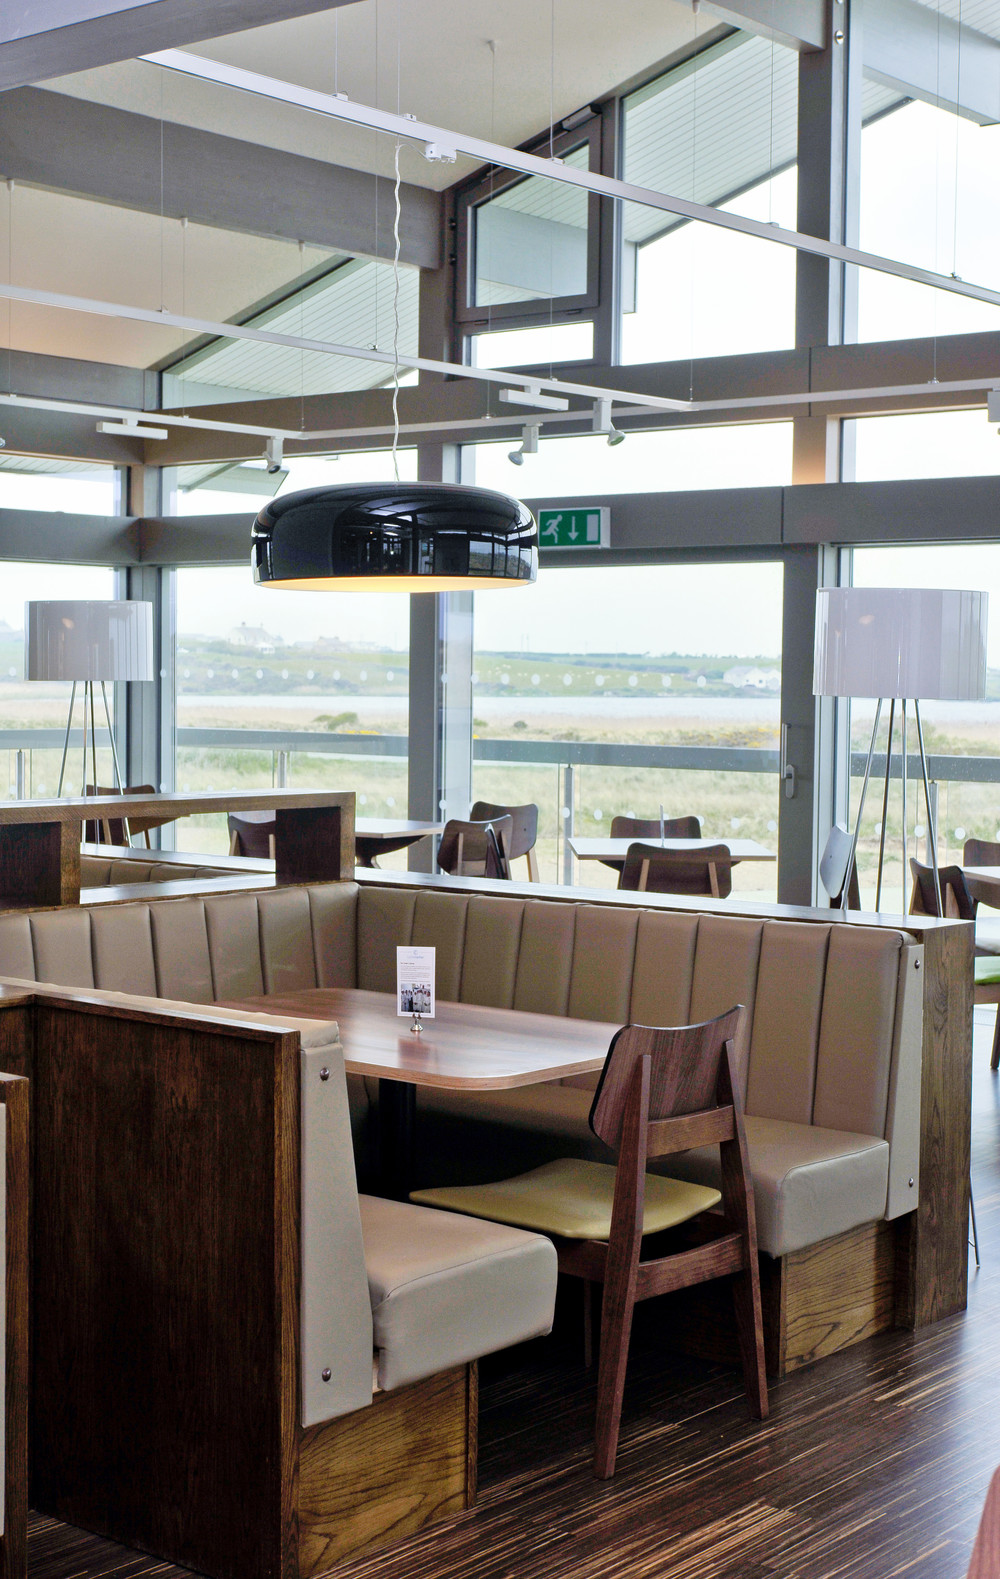 The Oyster Catcher restaurant in Anglesey with architectural and interior photography by Richard Stonehouse ,architectural photographer.